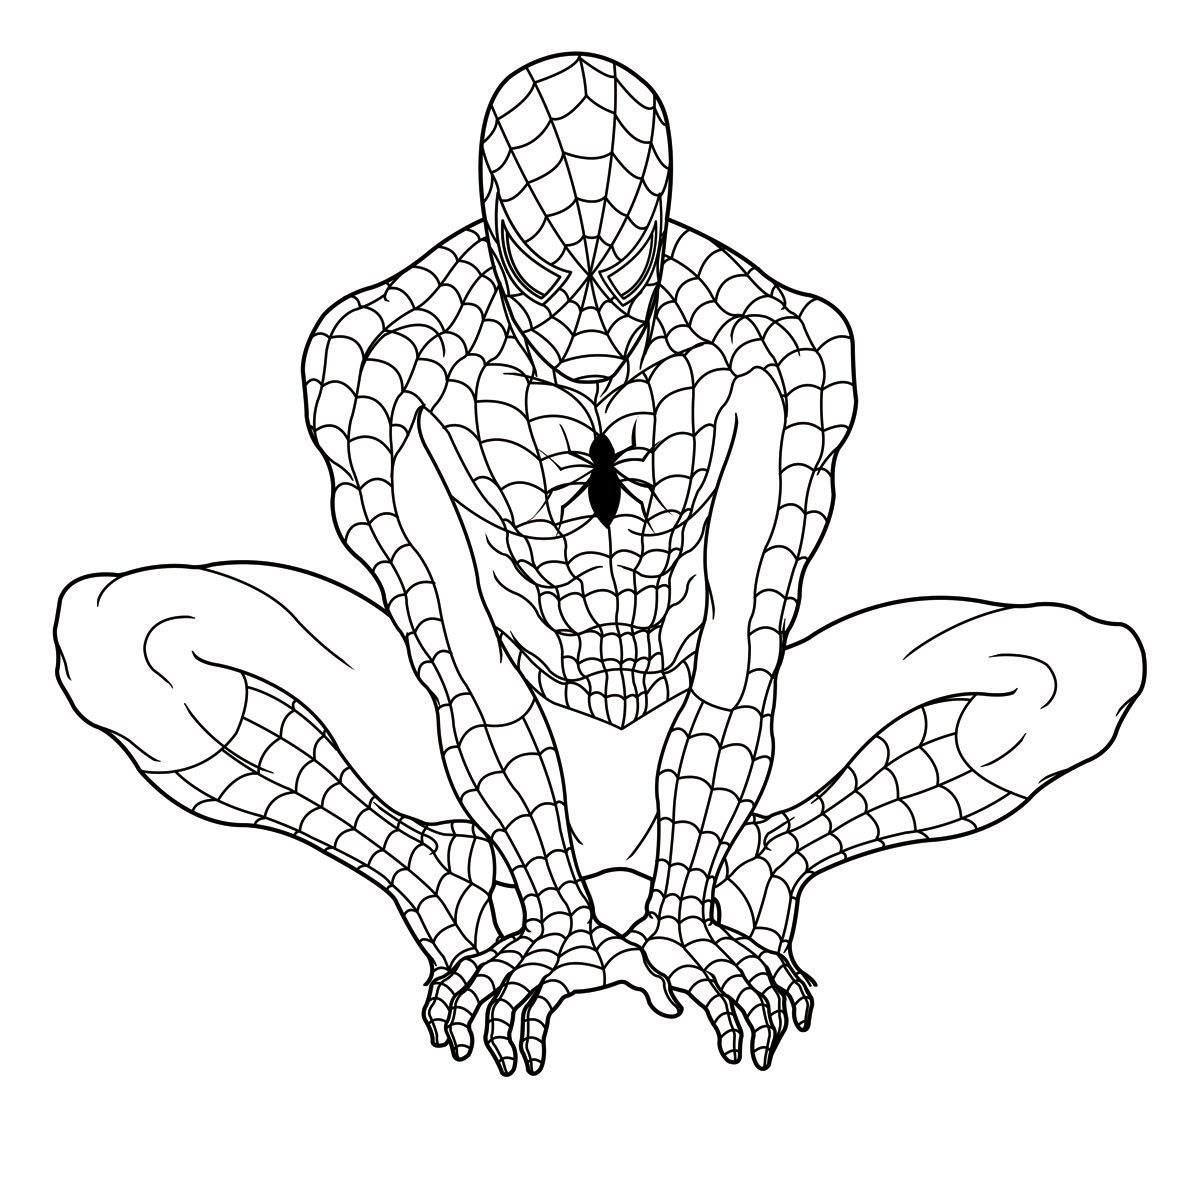 Spiderman Coloring Pages Superhero Coloring Superhero Coloring